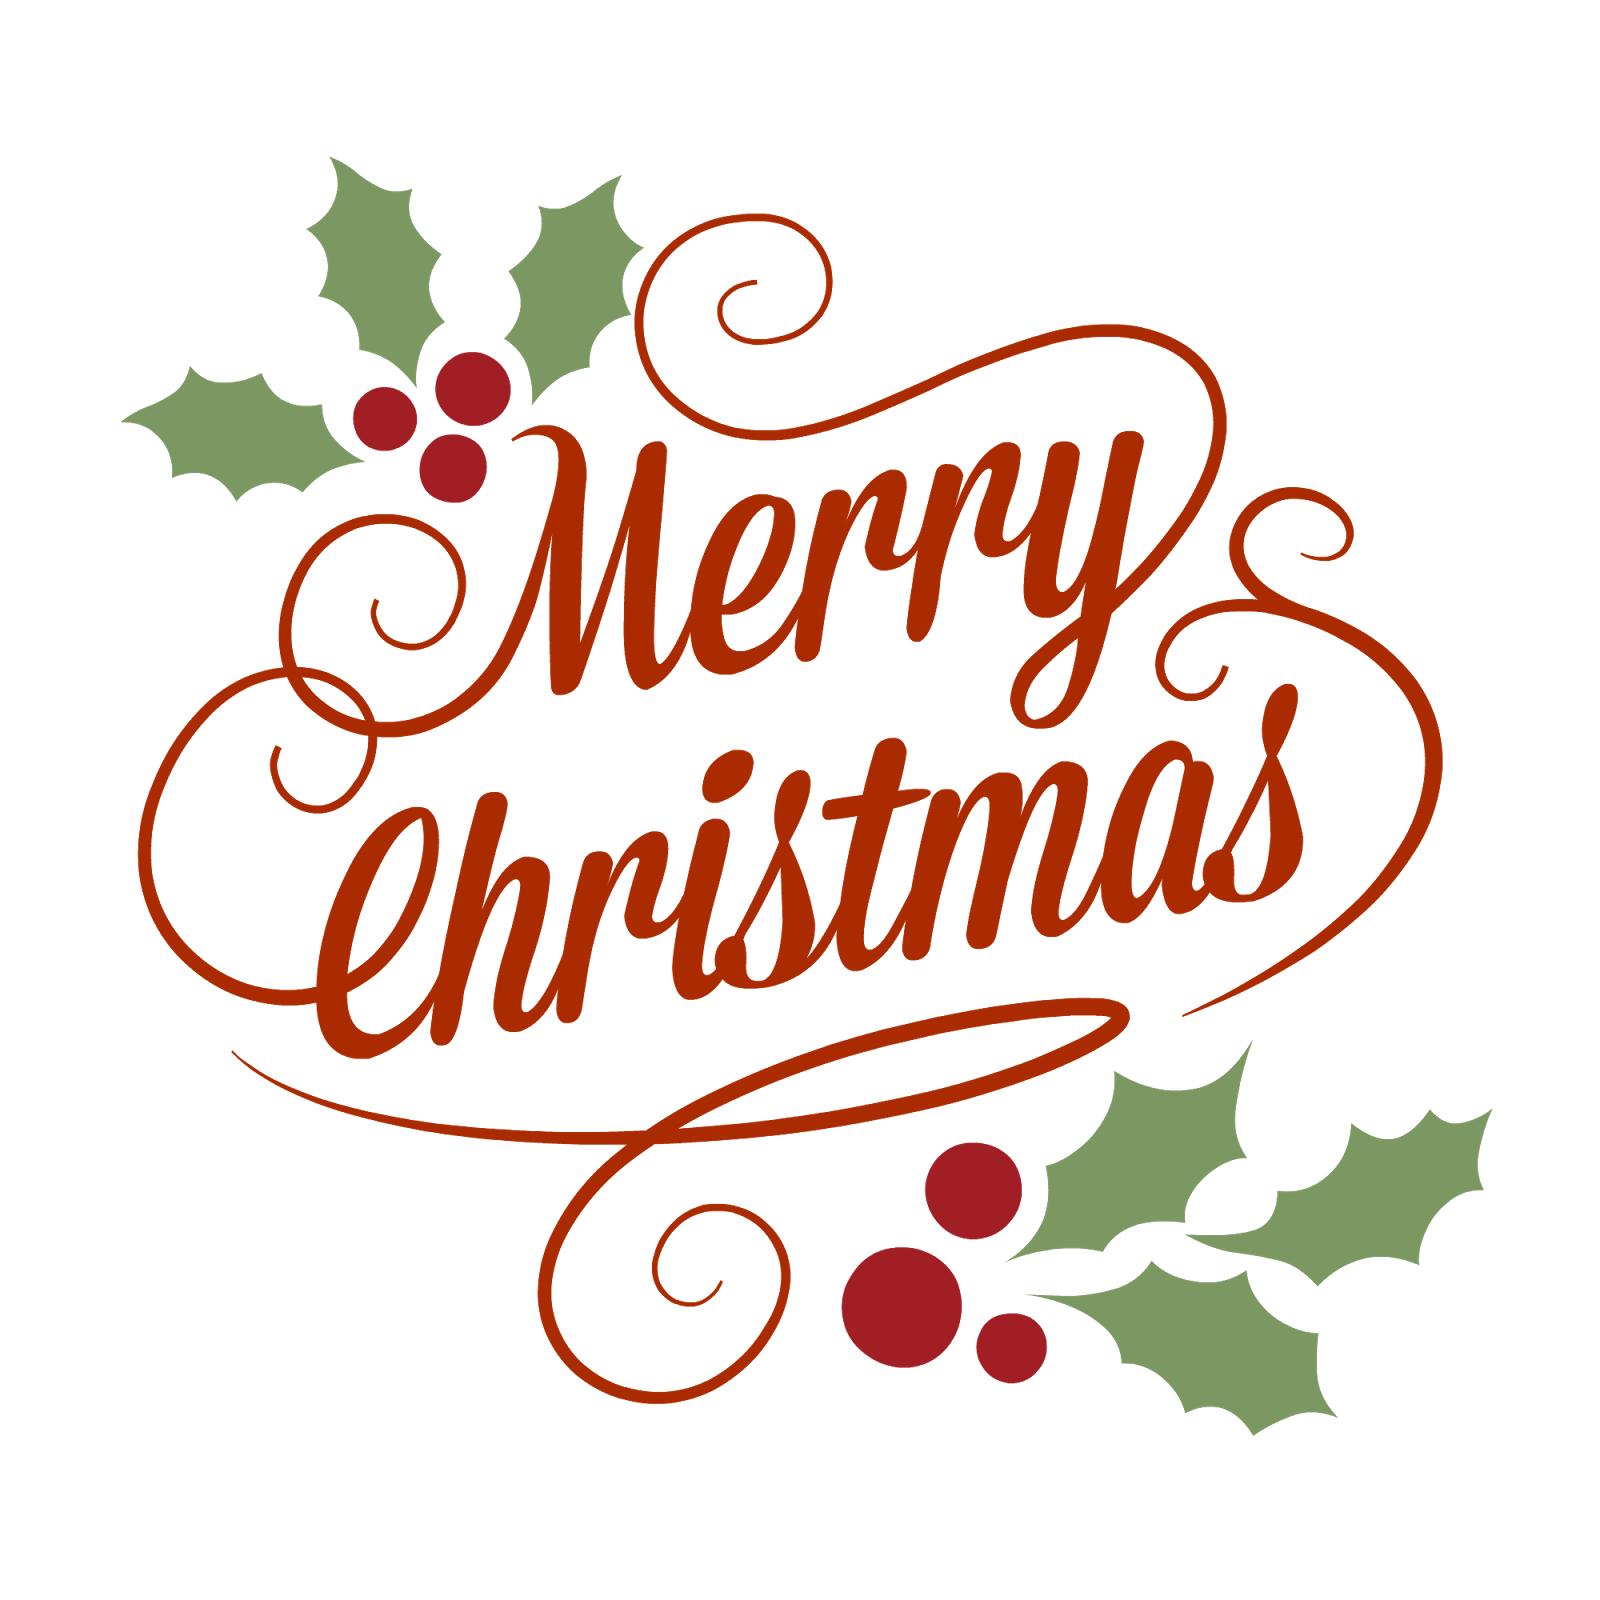 Christmas clipart fonts picture black and white download Free Christmas Profile Pictures (DP), Status, Pics Free | Christmas ... picture black and white download